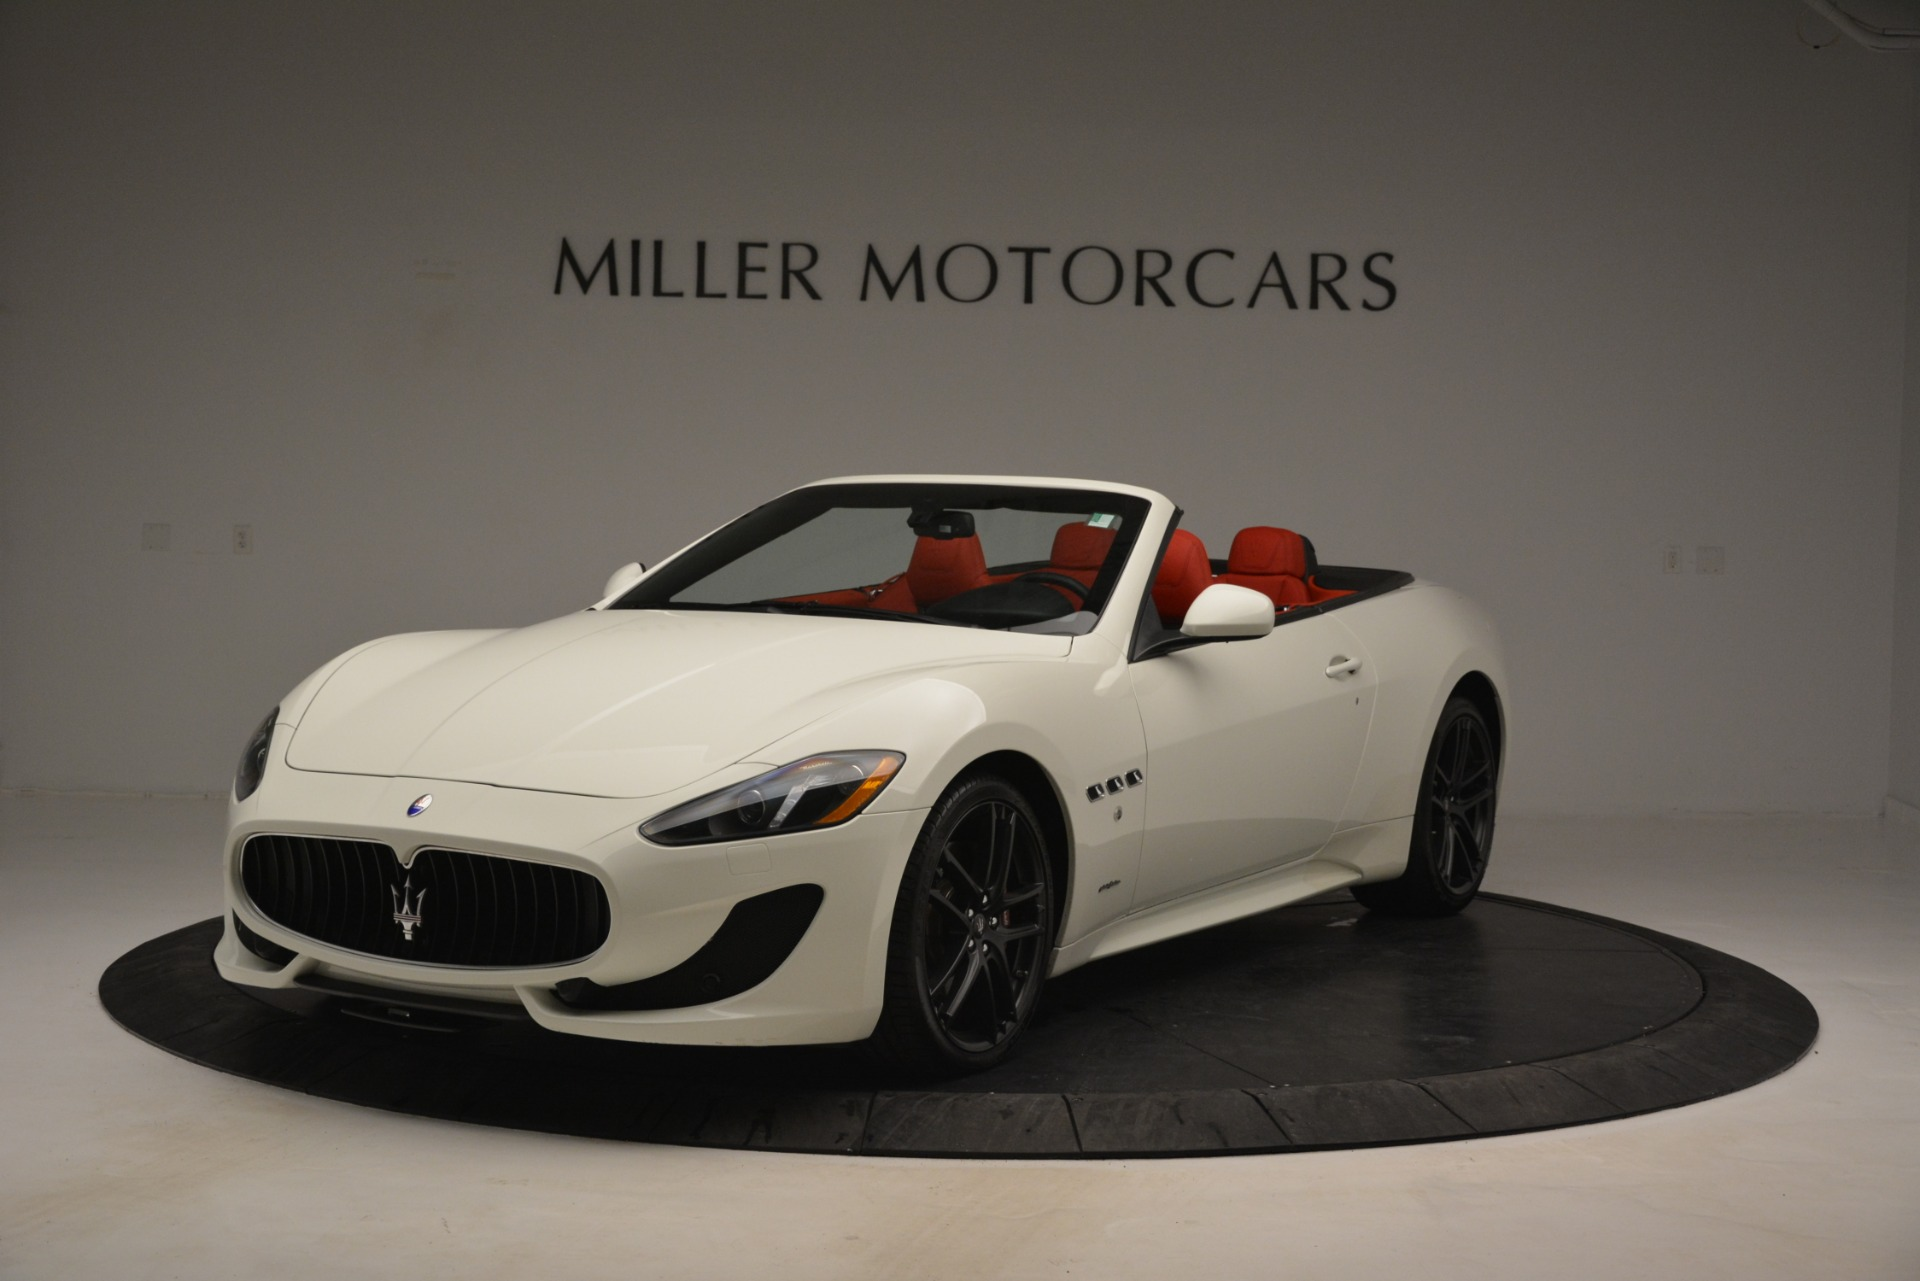 Used 2017 Maserati GranTurismo Sport for sale Sold at Bentley Greenwich in Greenwich CT 06830 1